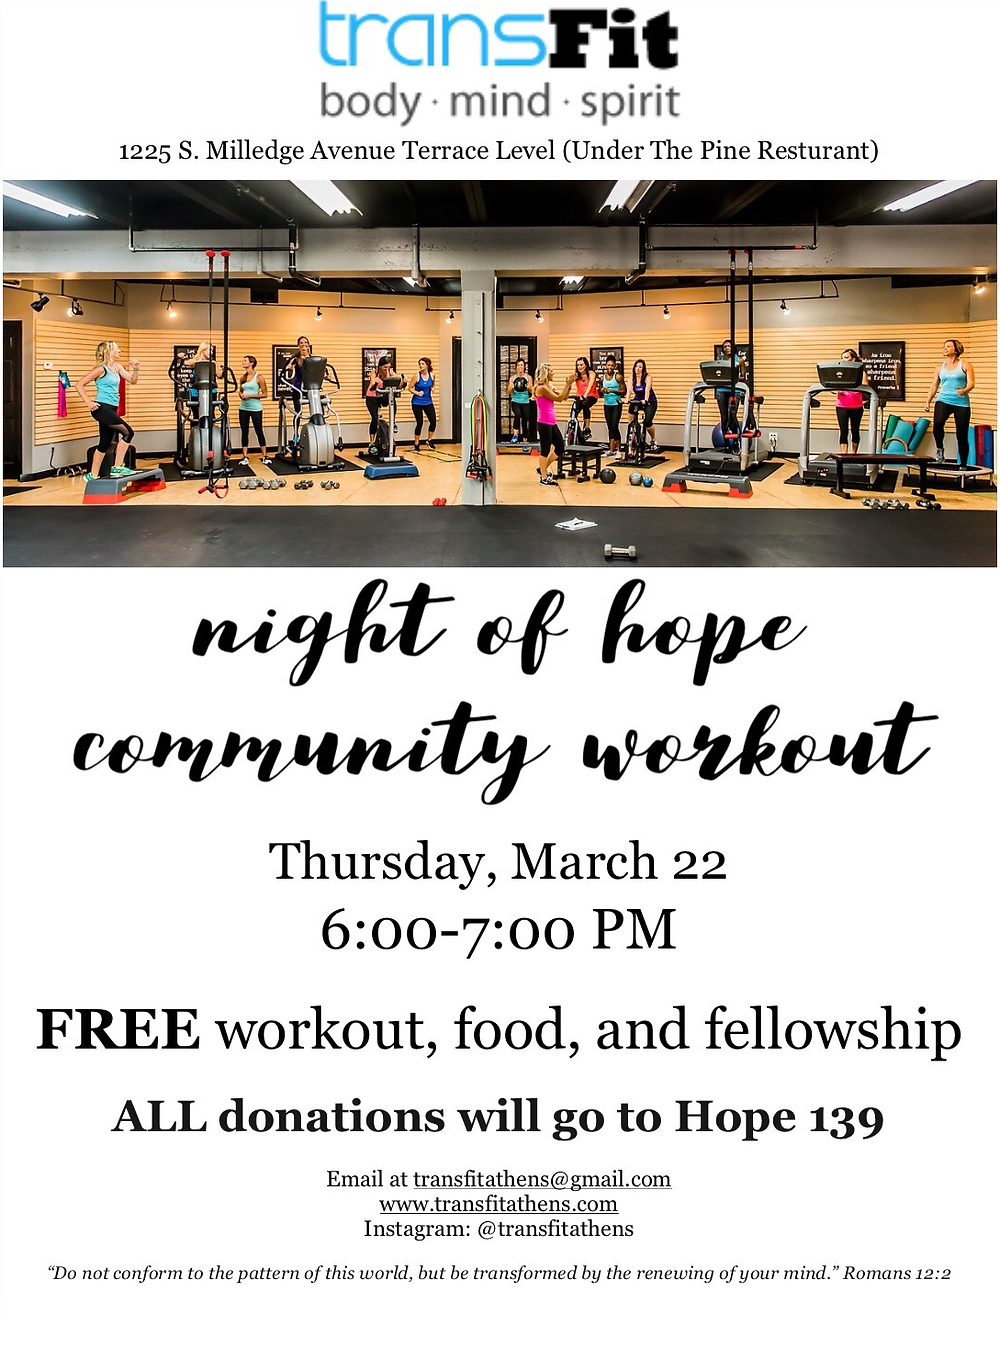 TransFit Workout and Fundraiser